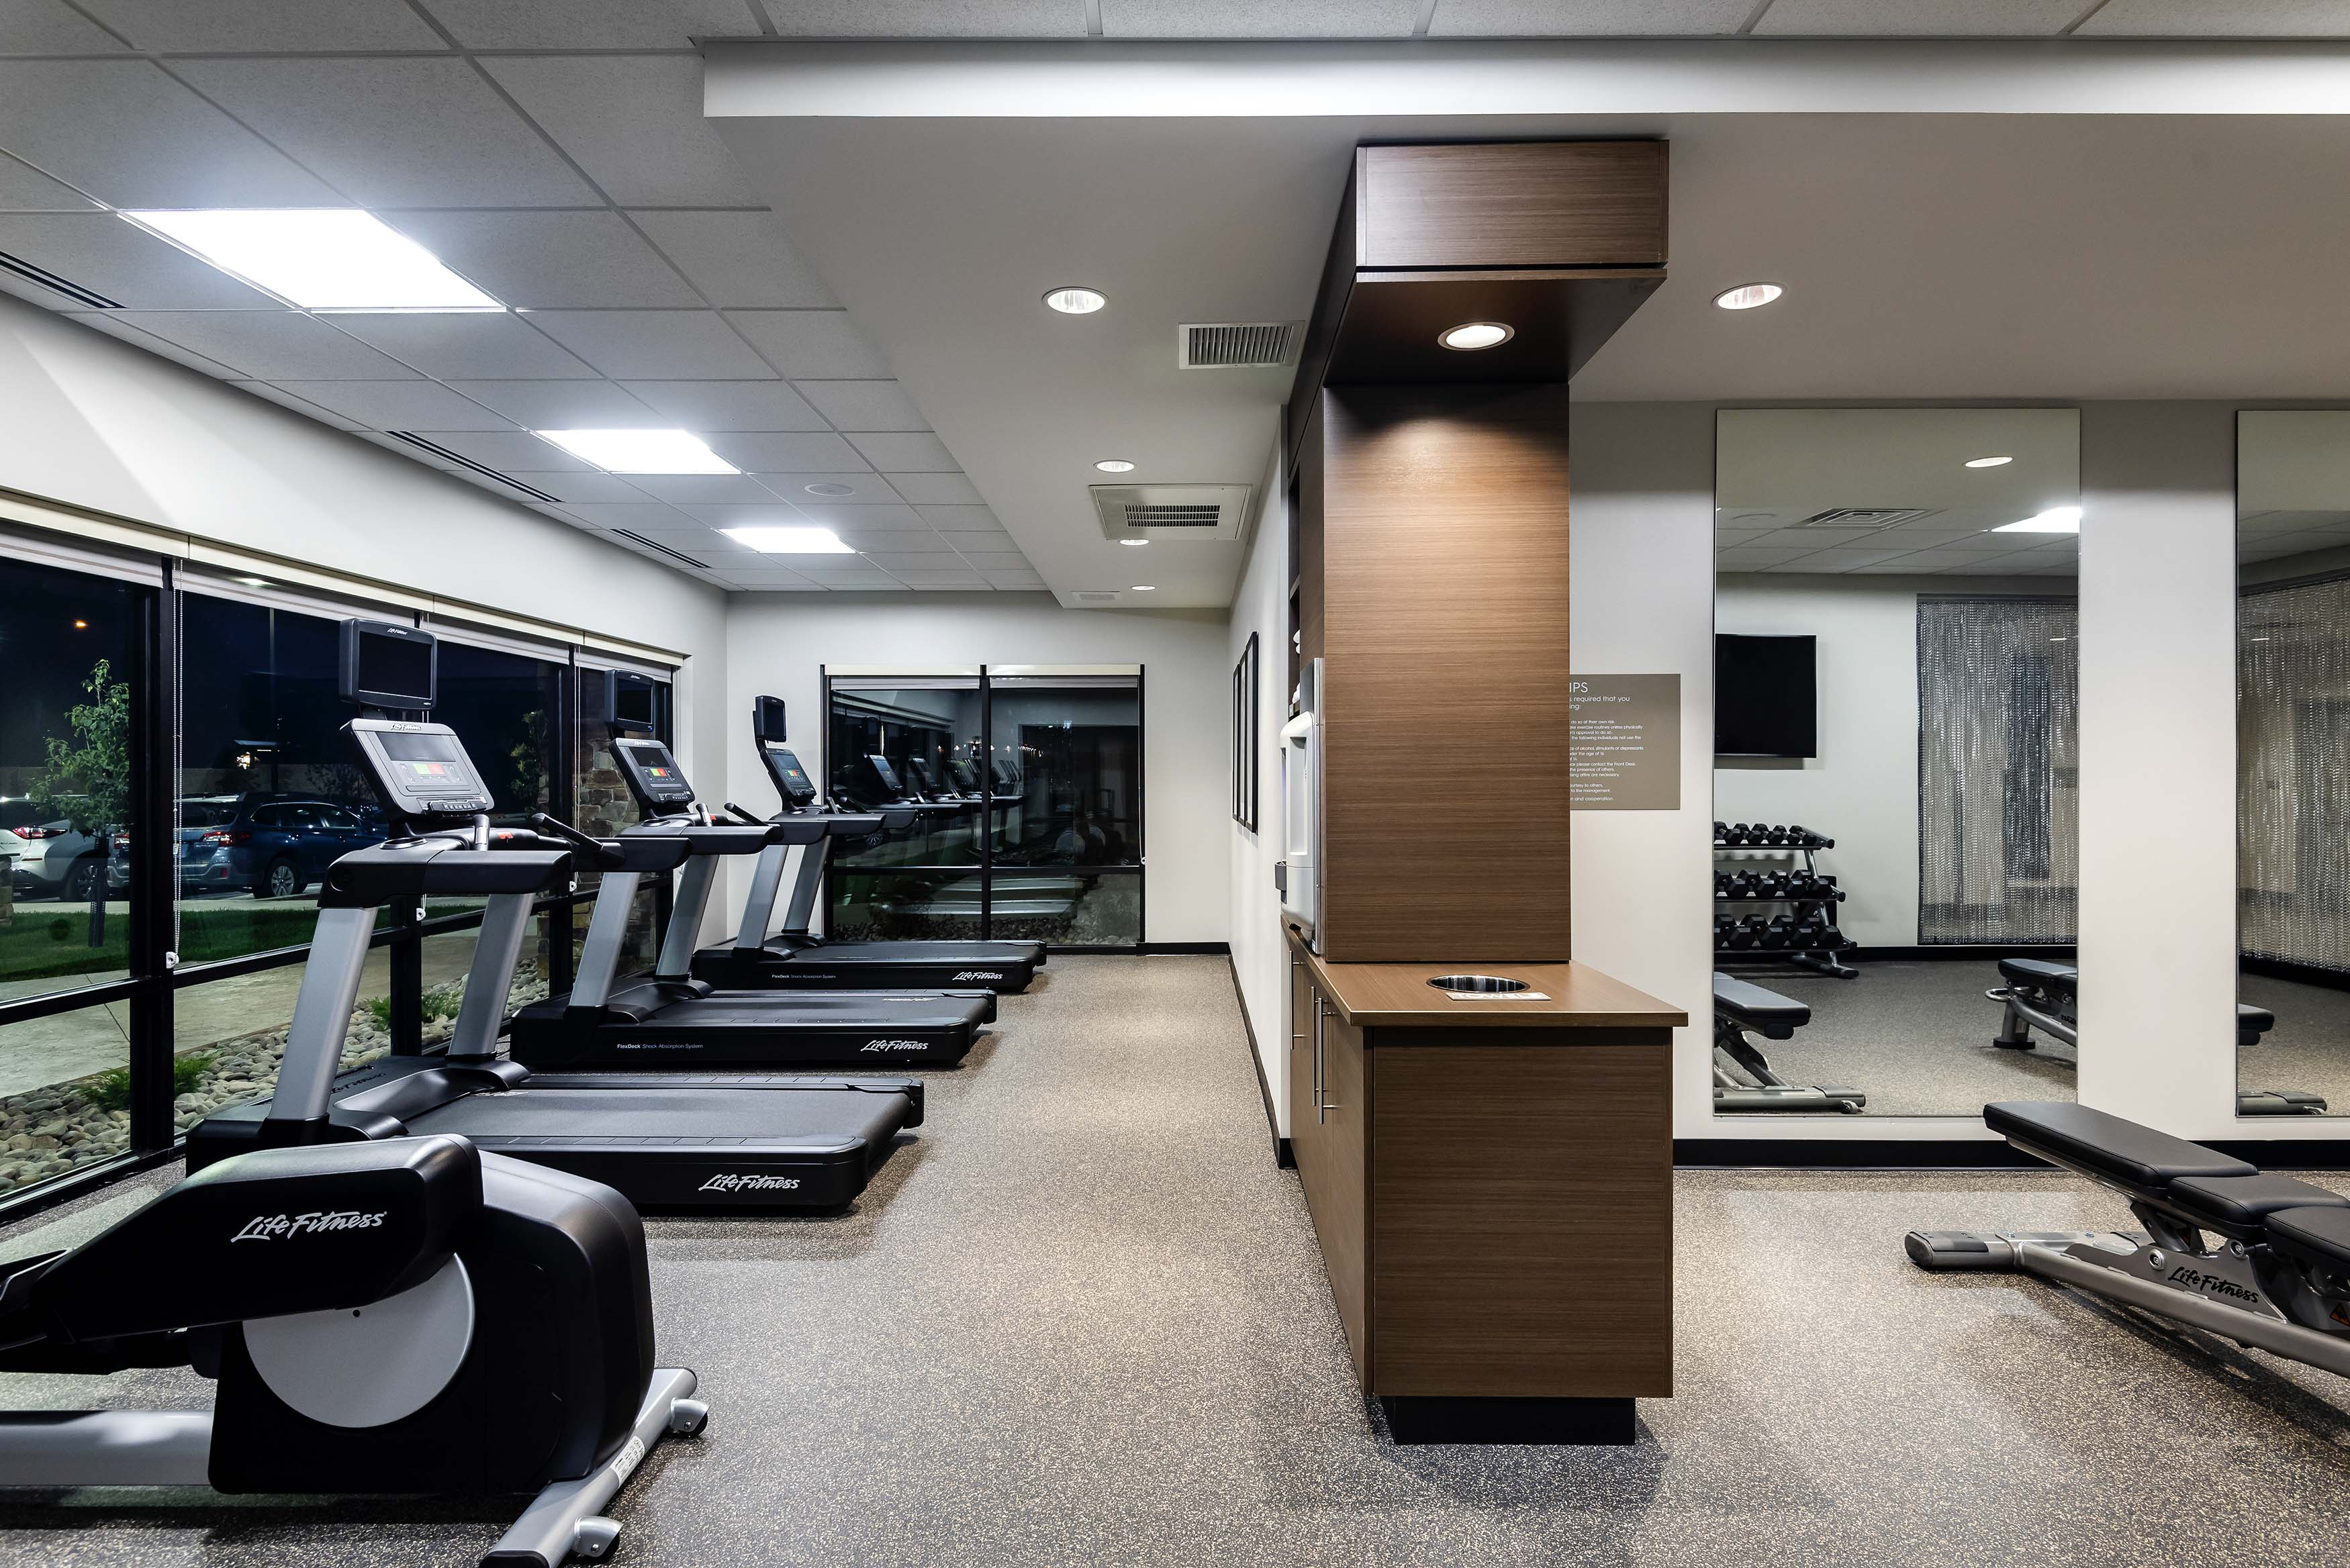 Towne-place-suite-marriott-hotels-towneplace-hotel-whitefish-montana-fitness